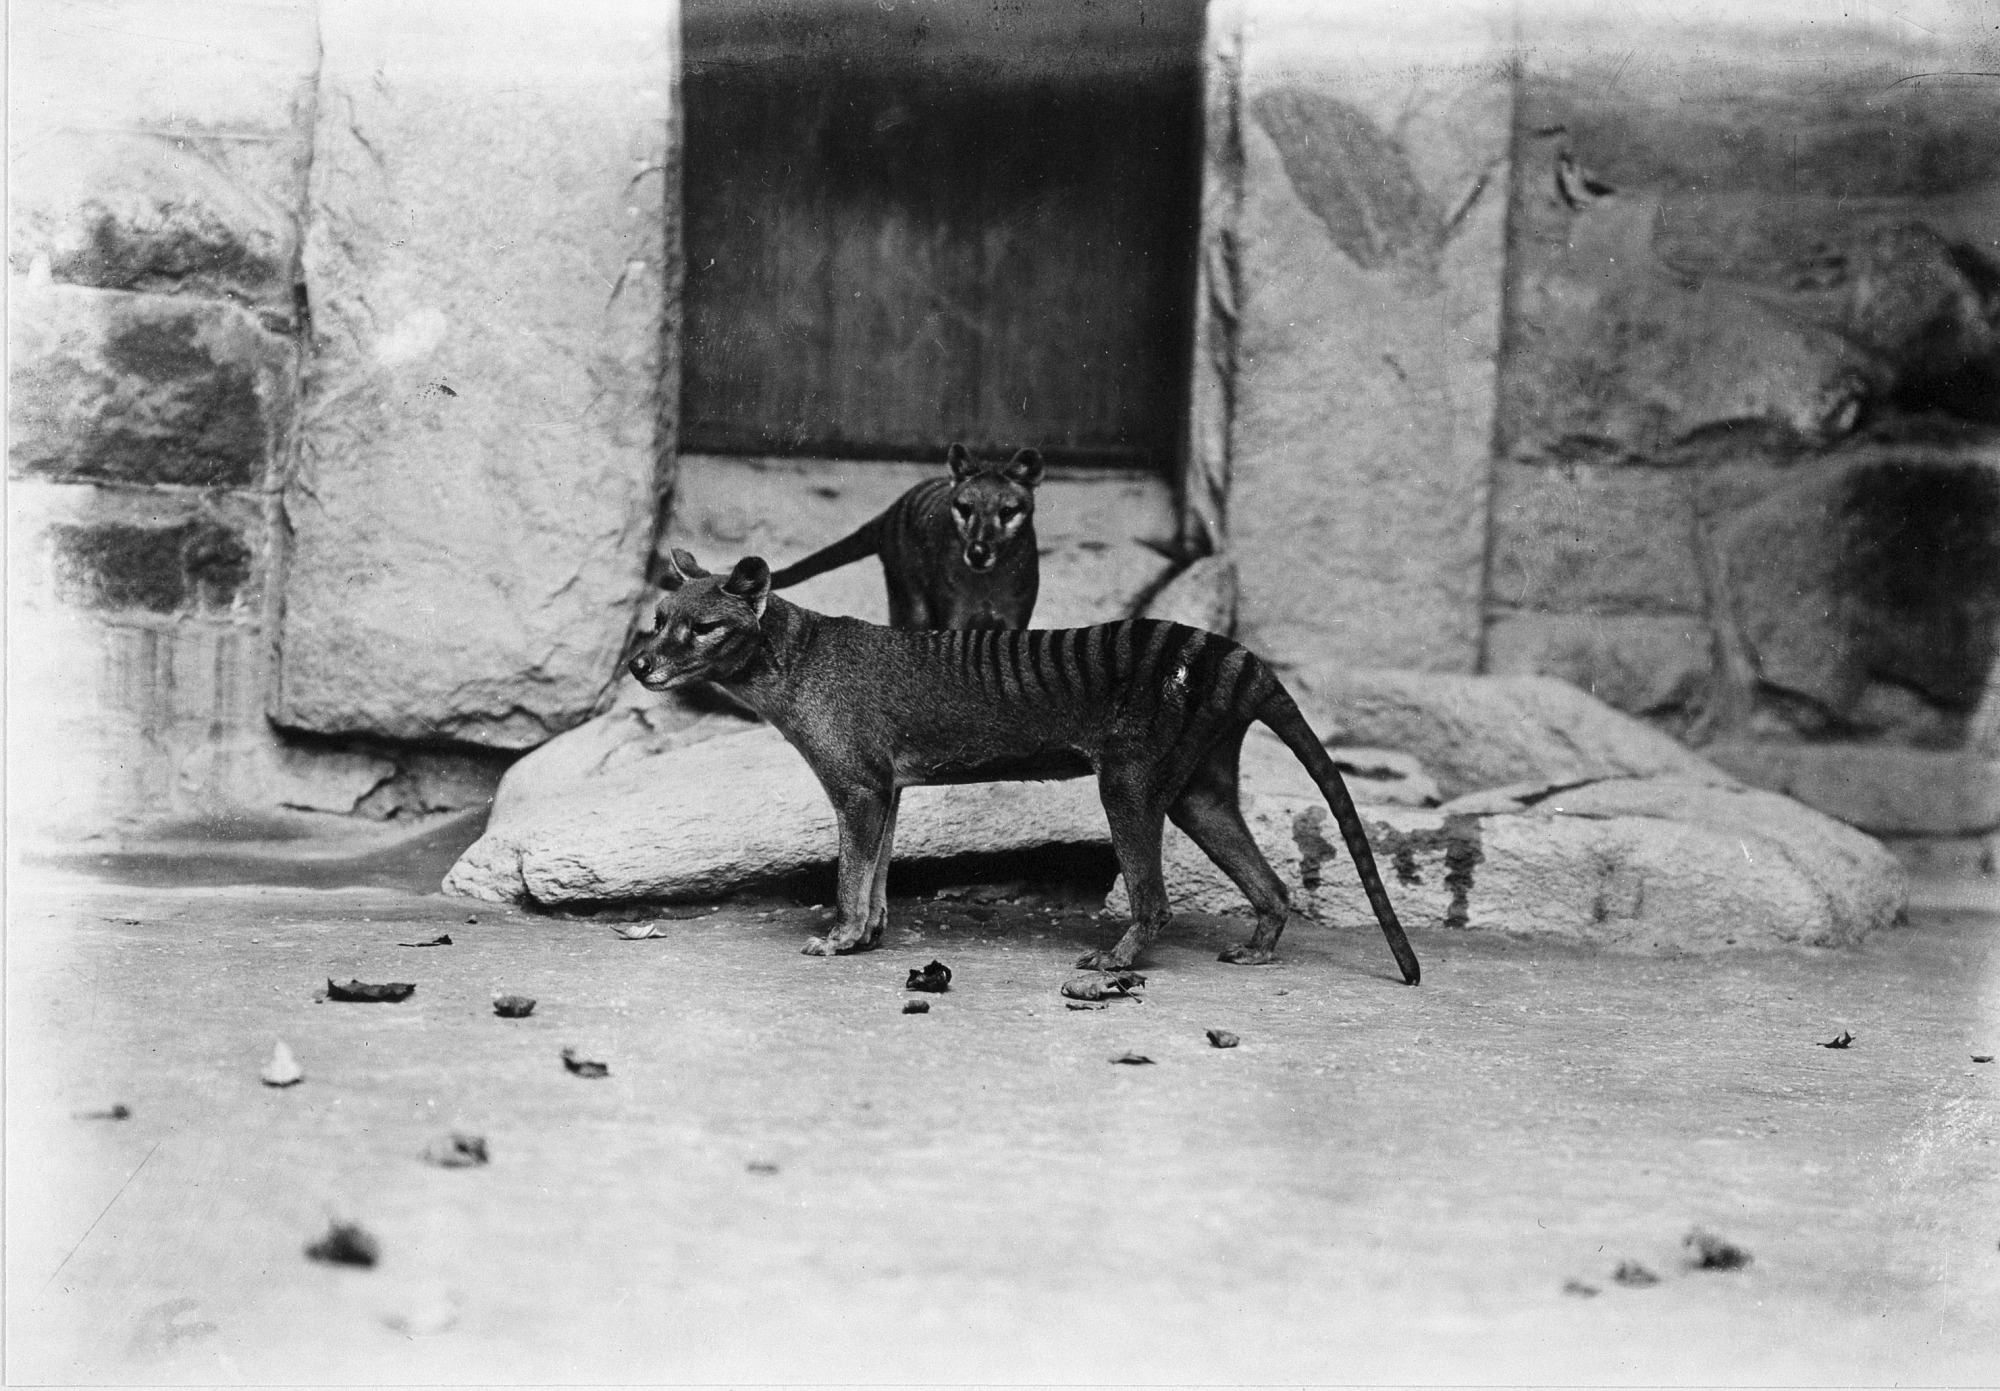 Thylacines (Tasmanian Wolves) at the National Zoo